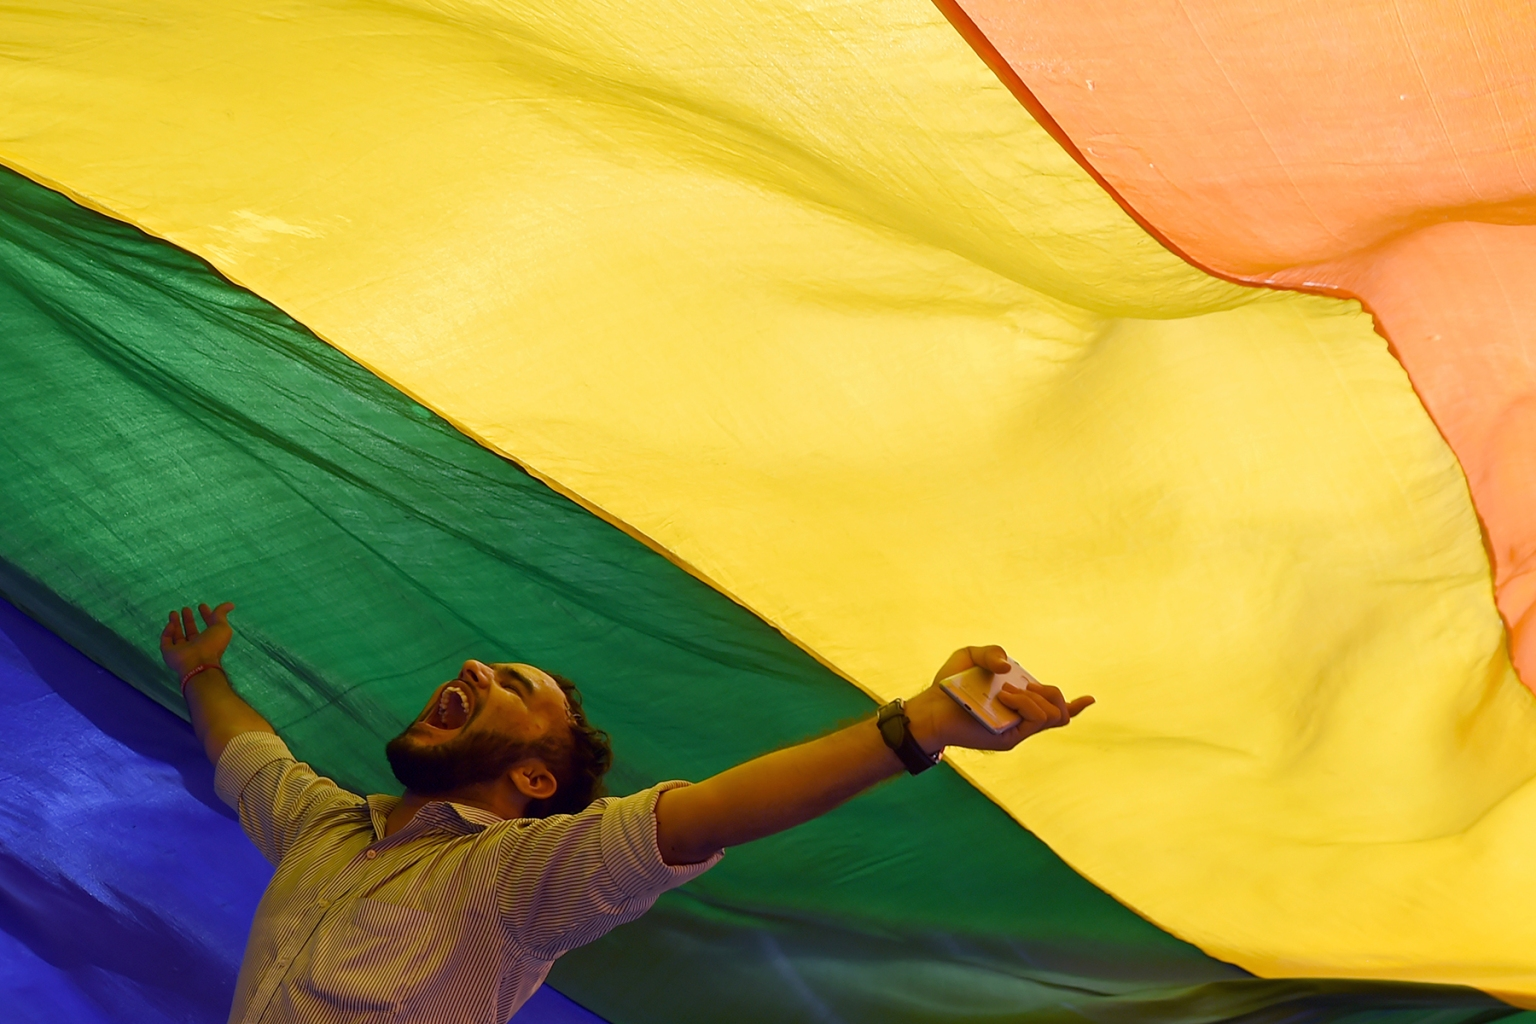 A member of the LGBT community celebrates in Mumbai after the Supreme Court decision to strike down a colonial-era ban on gay sex in India on Sept. 6. INDRANIL MUKHERJEE/AFP/Getty Images